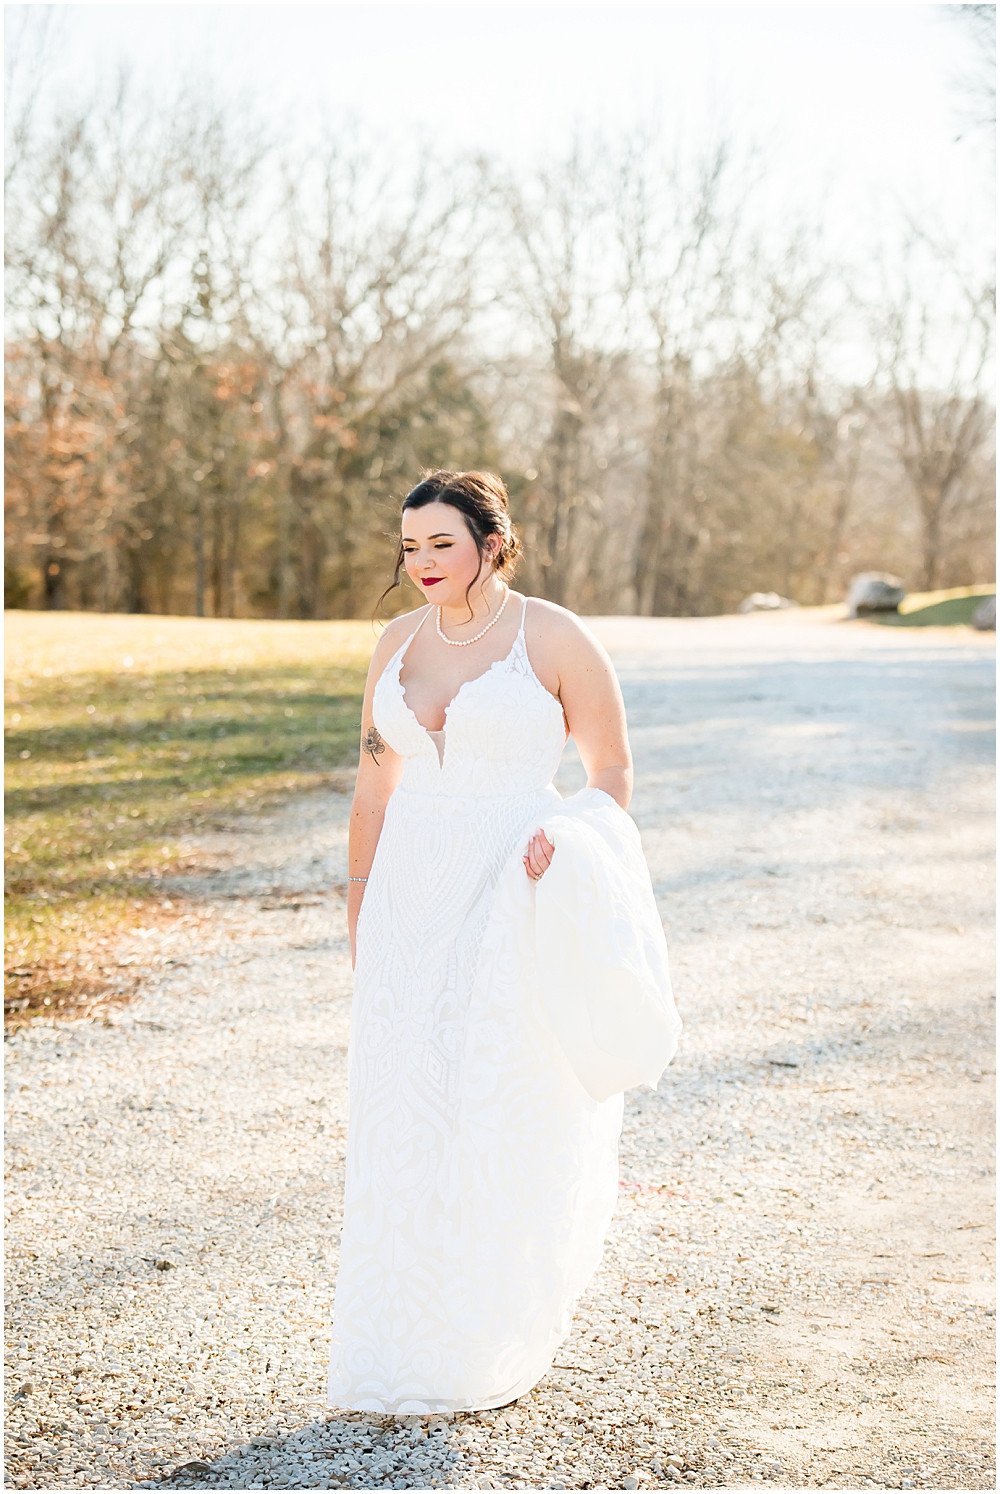 plunging neckline on winter wedding dress